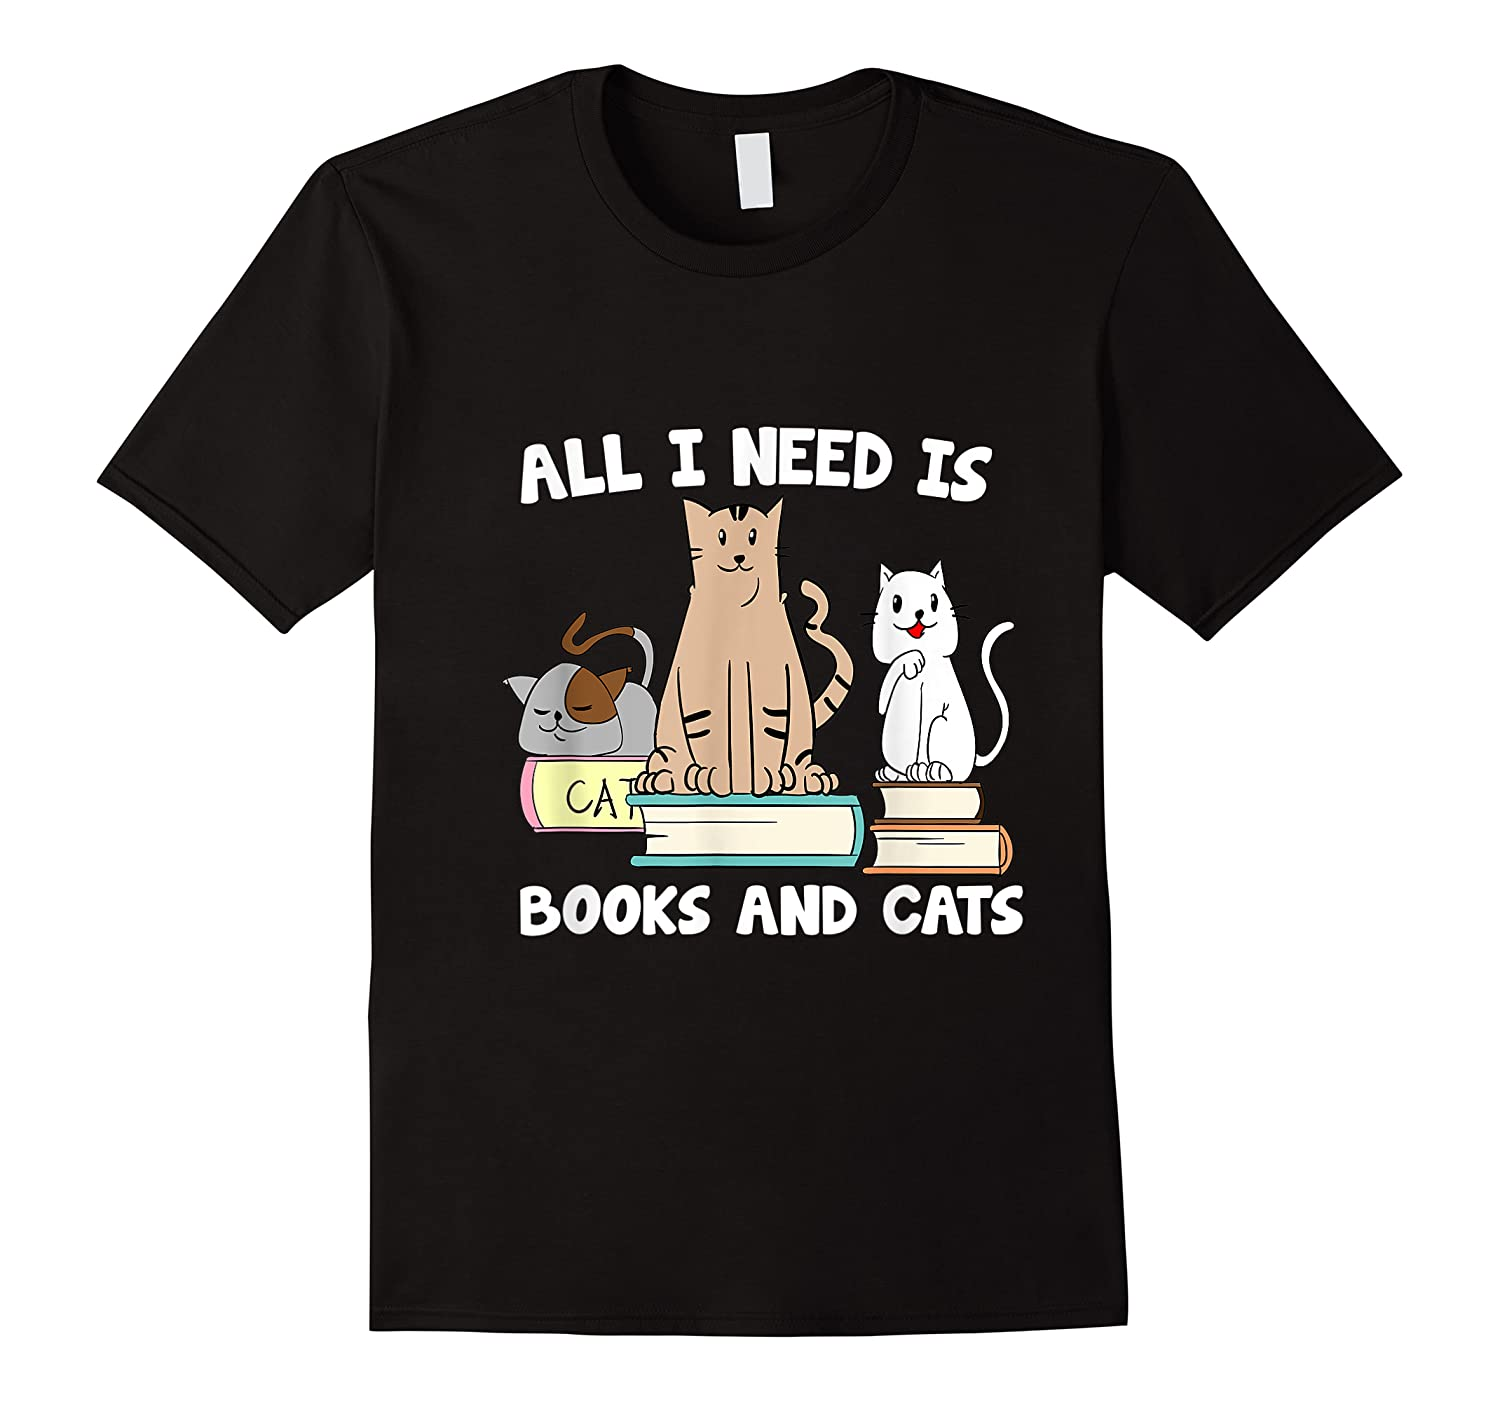 All I Need Is Books And Cats Funny Readerreading Shirts